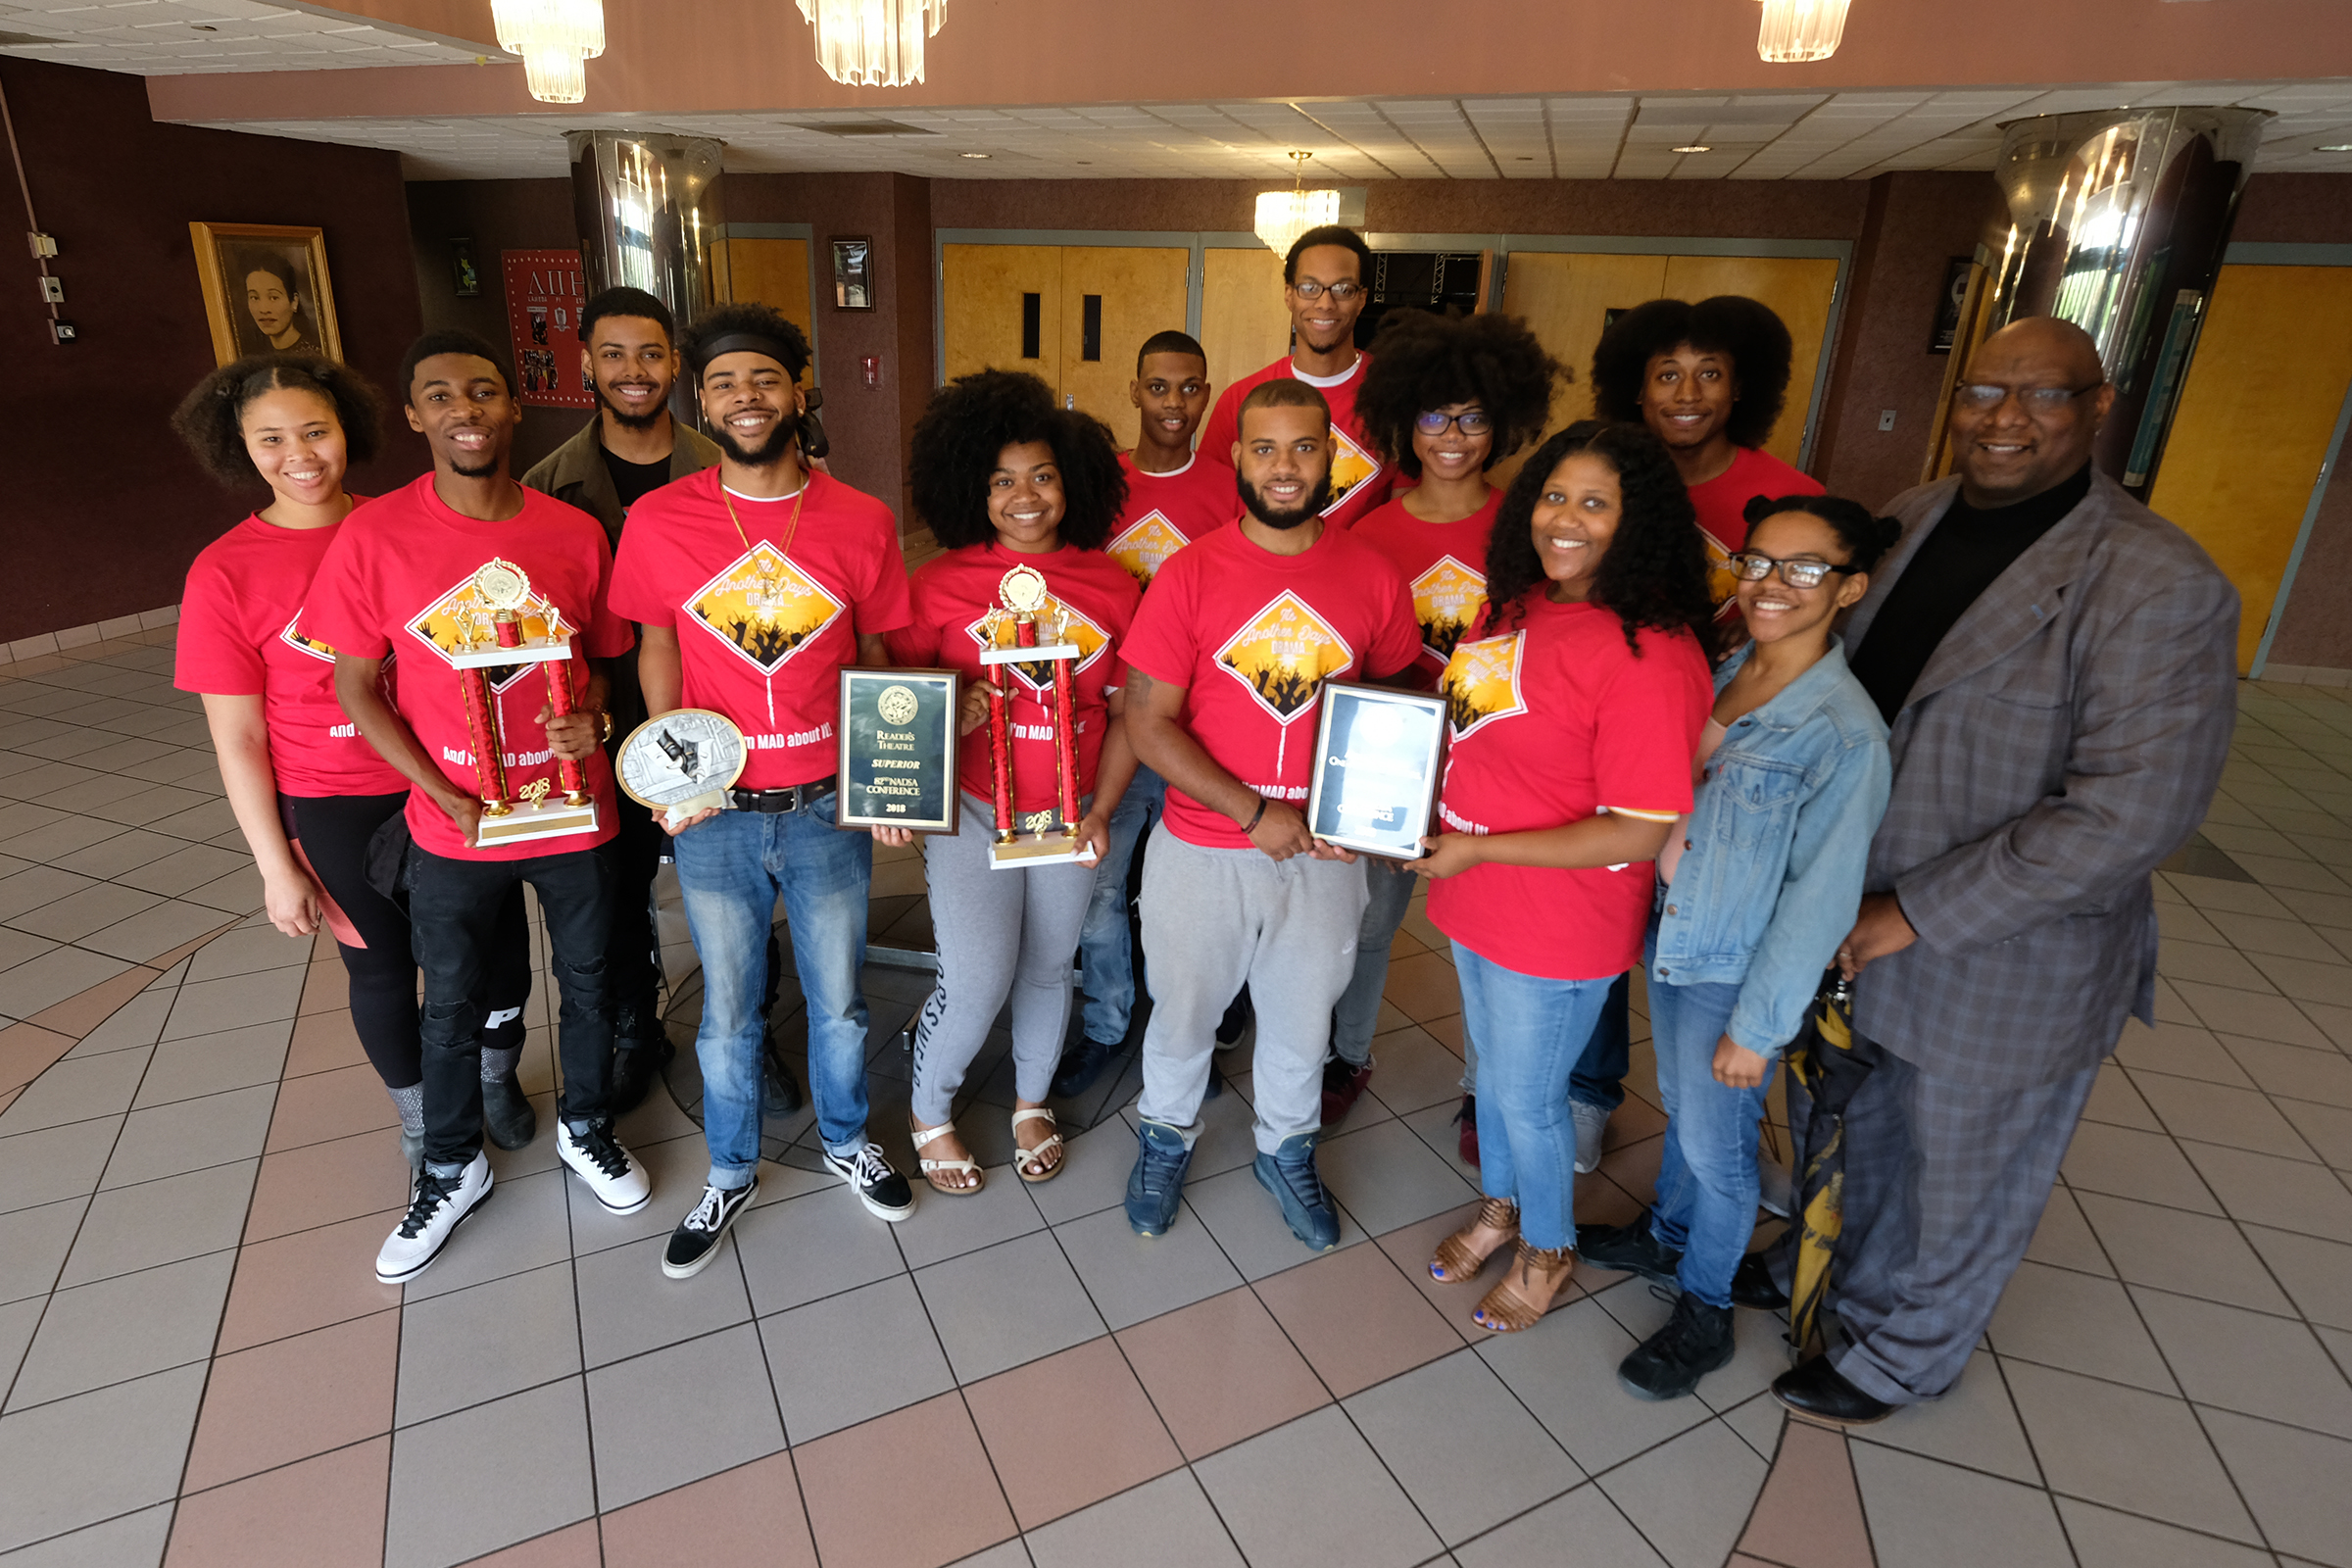 JSU students and members of the theatrical performance troope MADDRAMA brought home more first-place awards than their competitors at the 82nd Annual National Association of Dramatic and Speech Arts Competition in March. (Photo by Charles A. Smith/JSU)